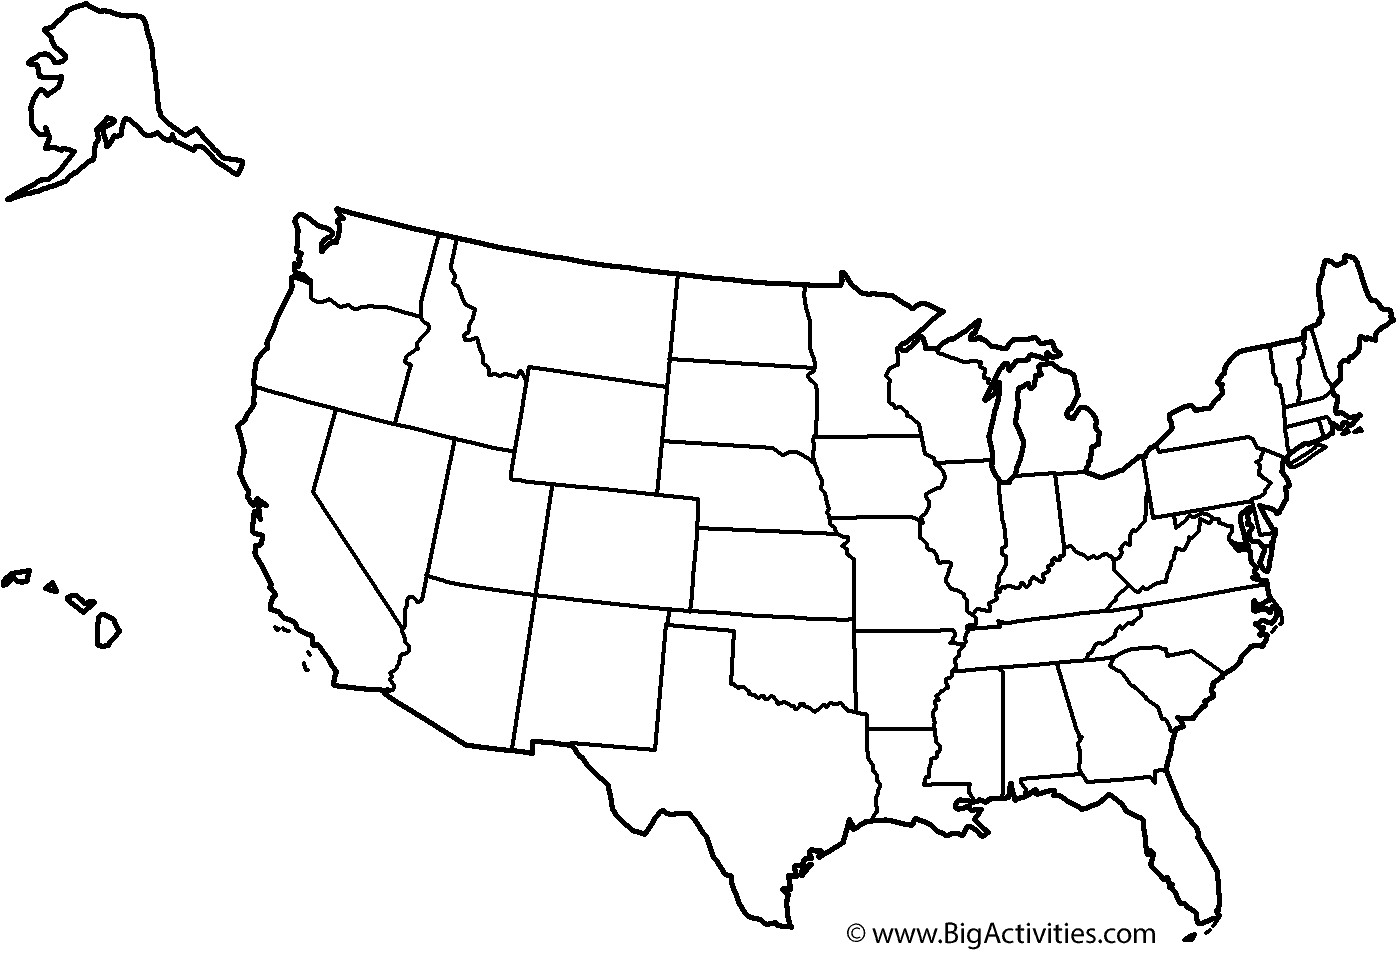 Map of the United States with title and states Coloring Page